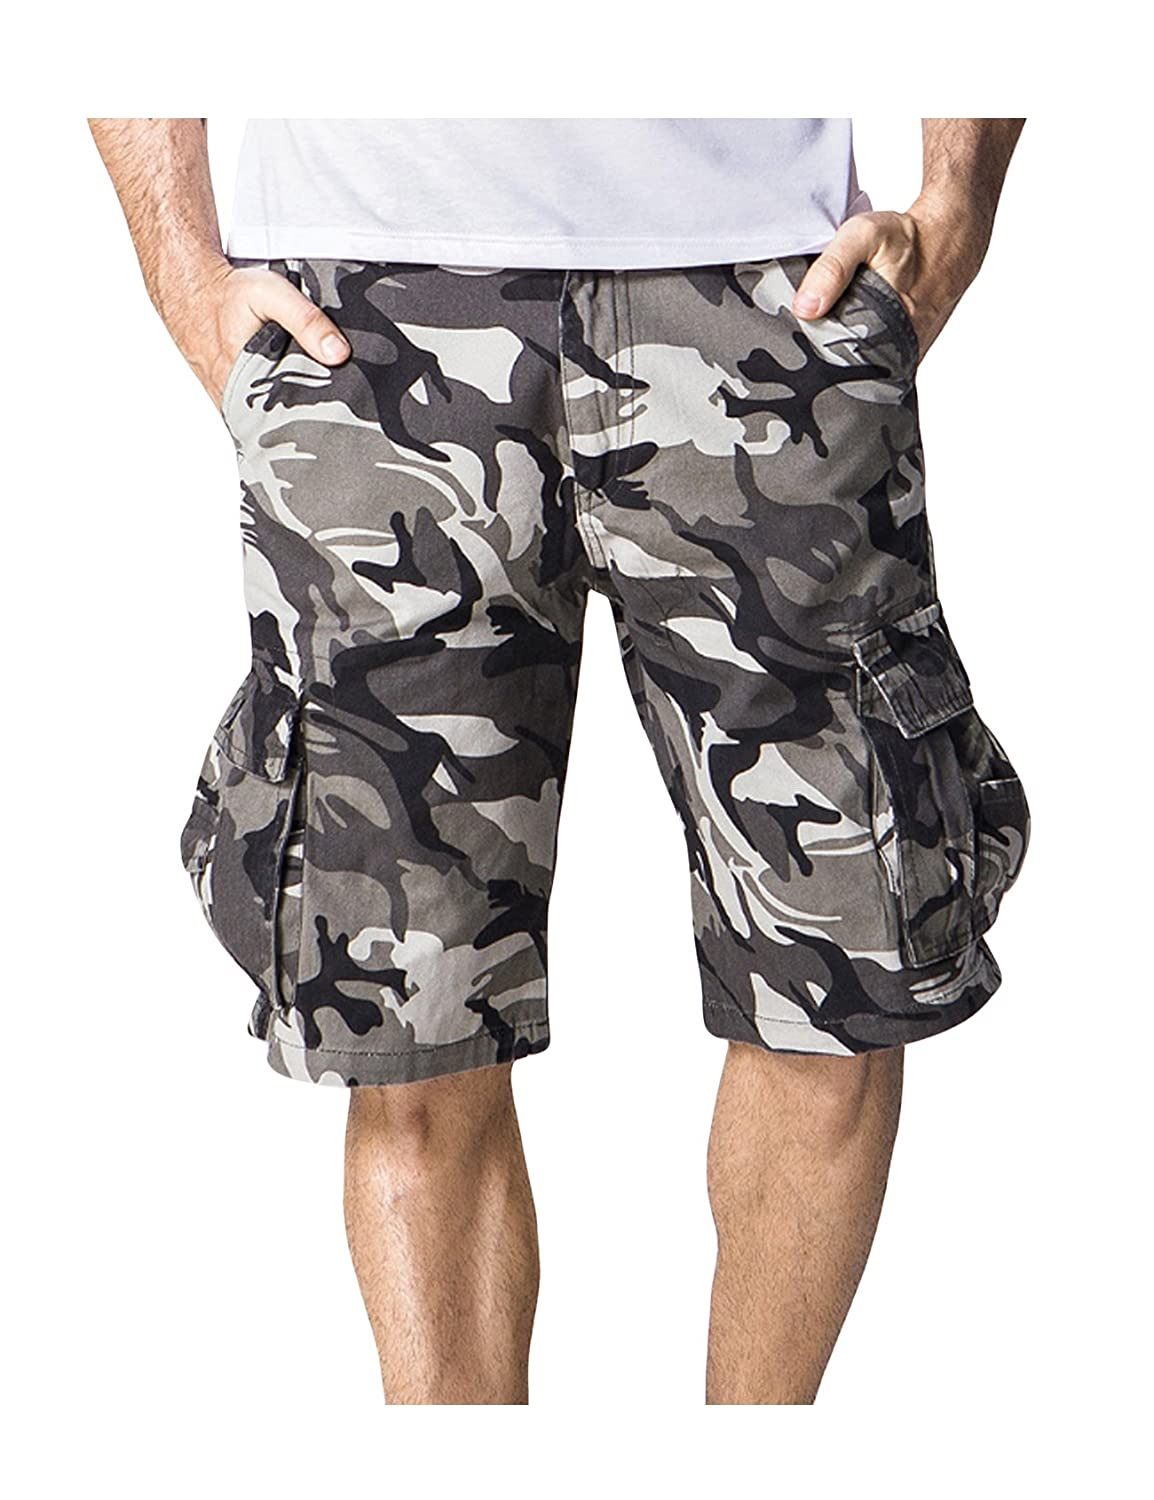 newrong Men's Military Relaxed Fit Twill Shorts XZMYNC0495